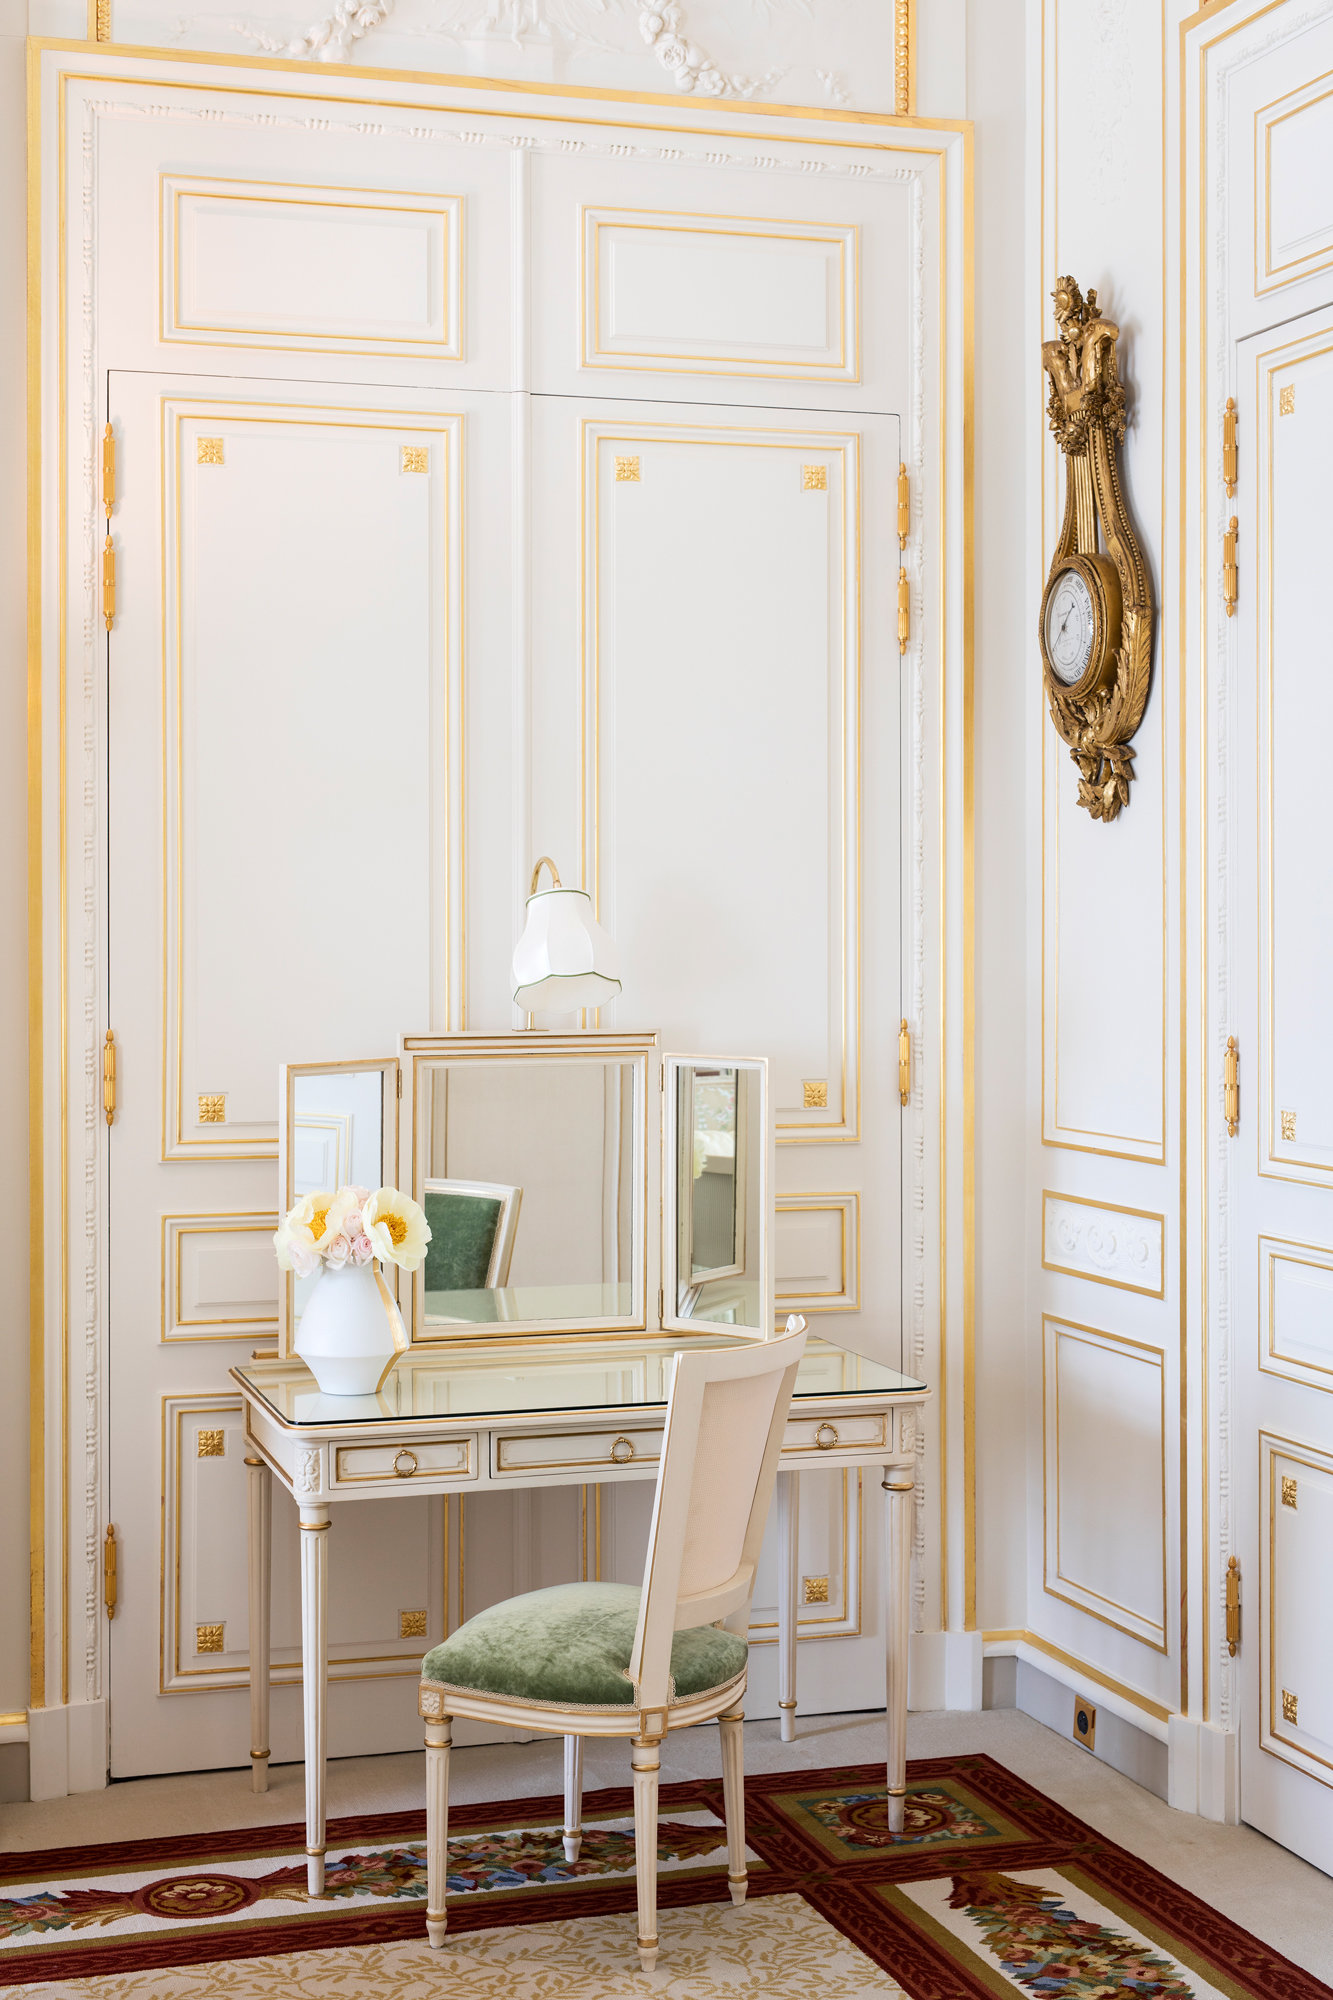 Painted white wooden panels detailed with gold leaf and hardware make this a timeless dressing area